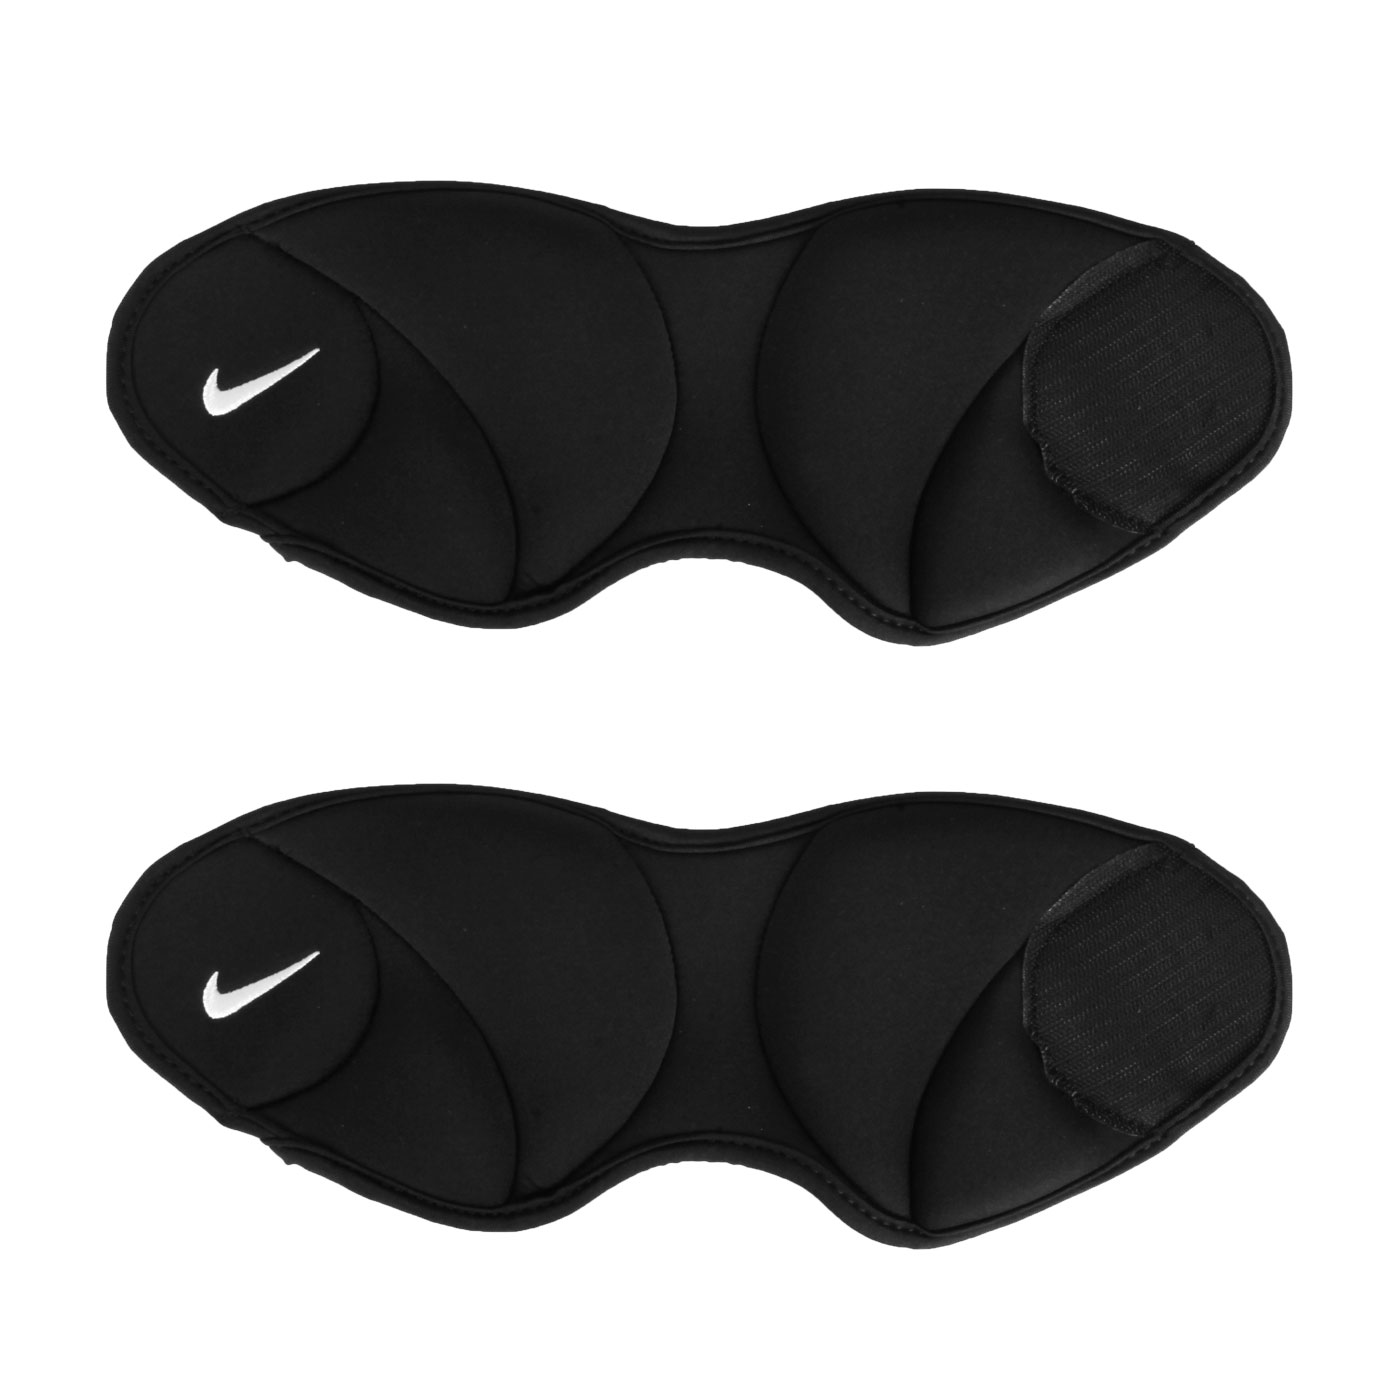 NIKE ANKLE WEIGHTS 2.5LB/1.1KG腳踝加重器 N1000814010OS - 黑白